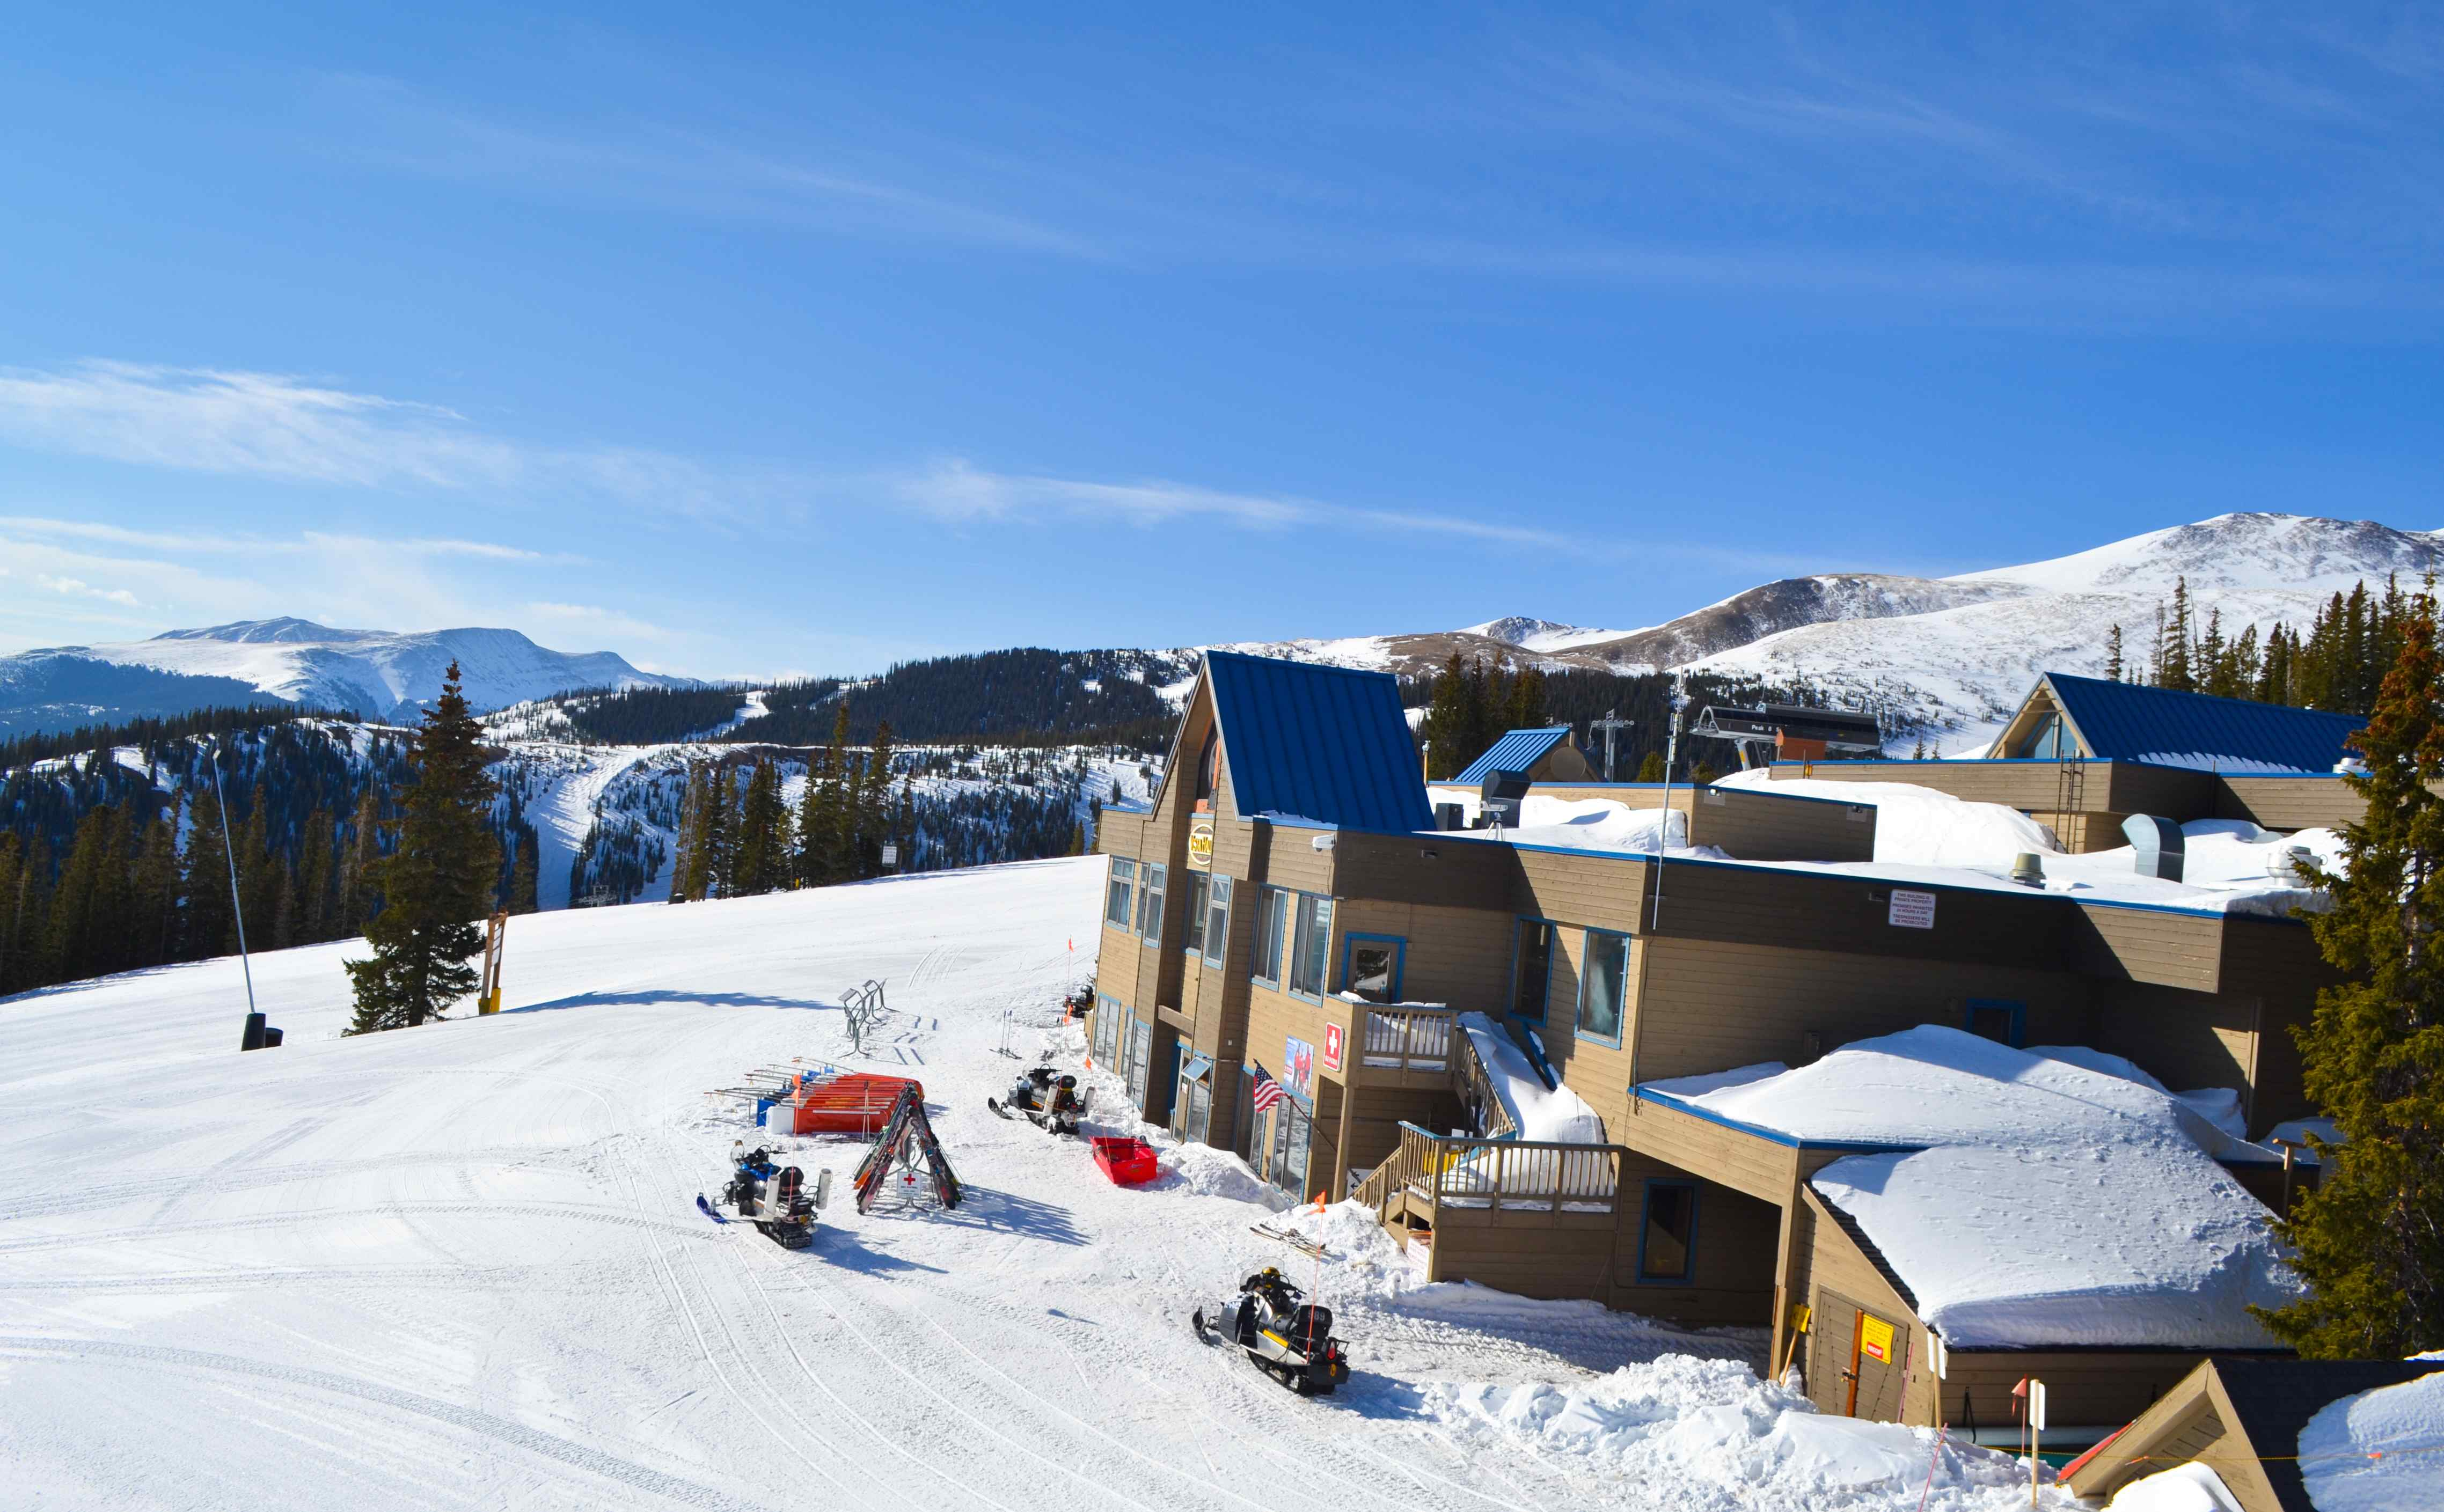 Vista Haus from the lift